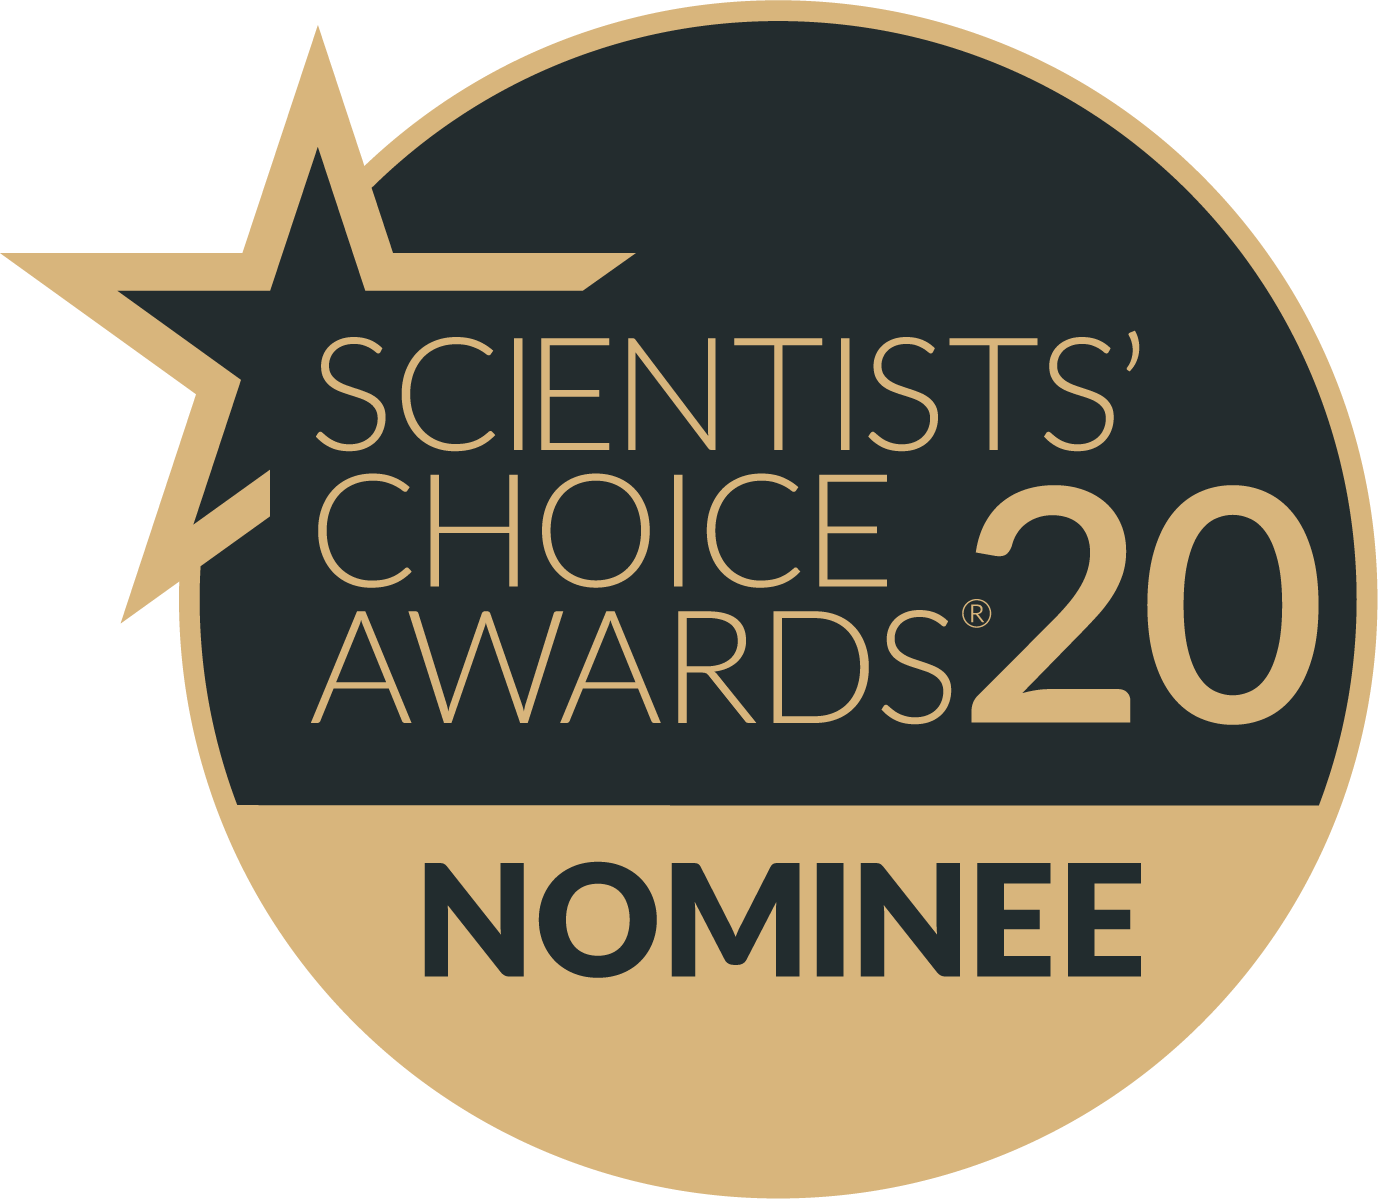 Scientists Choice Award Nominee Badge